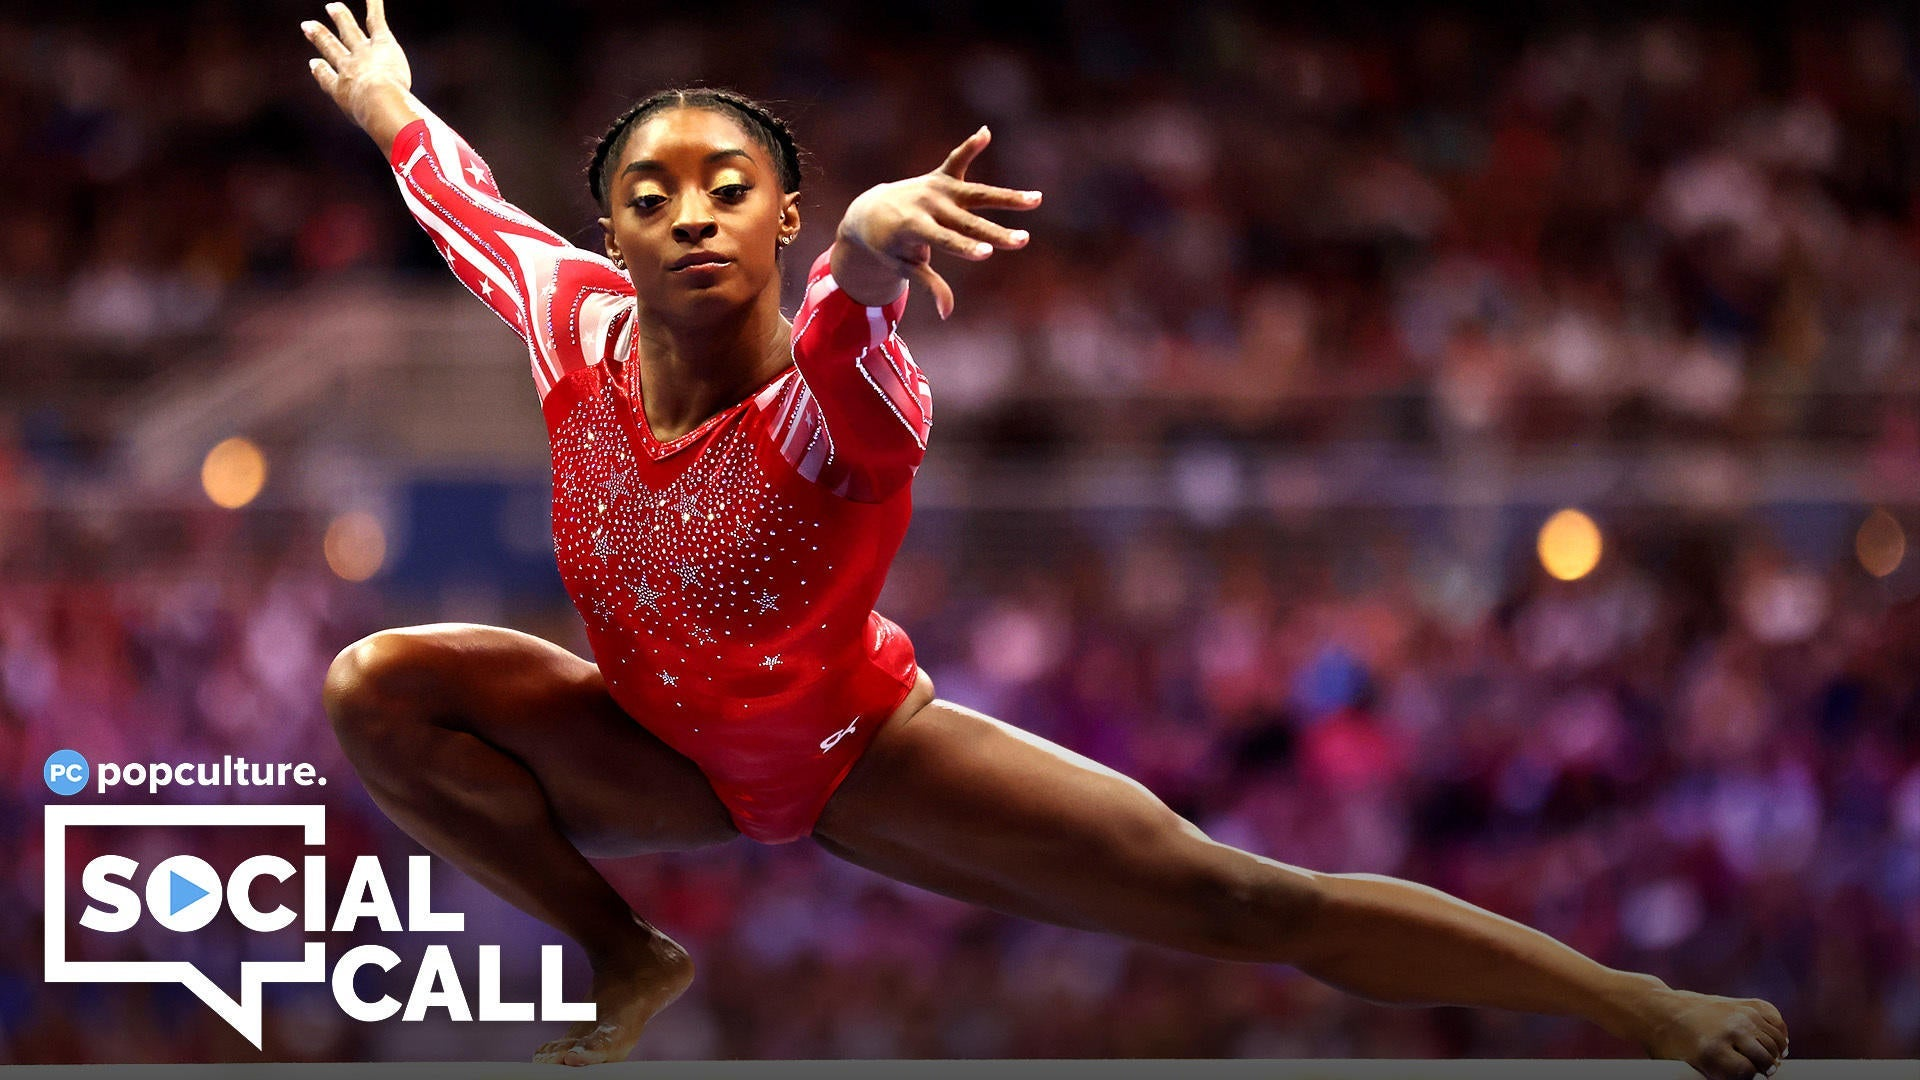 Popculture Social Call - Tokyo Olympics - Who to Watch at the 2021 Games